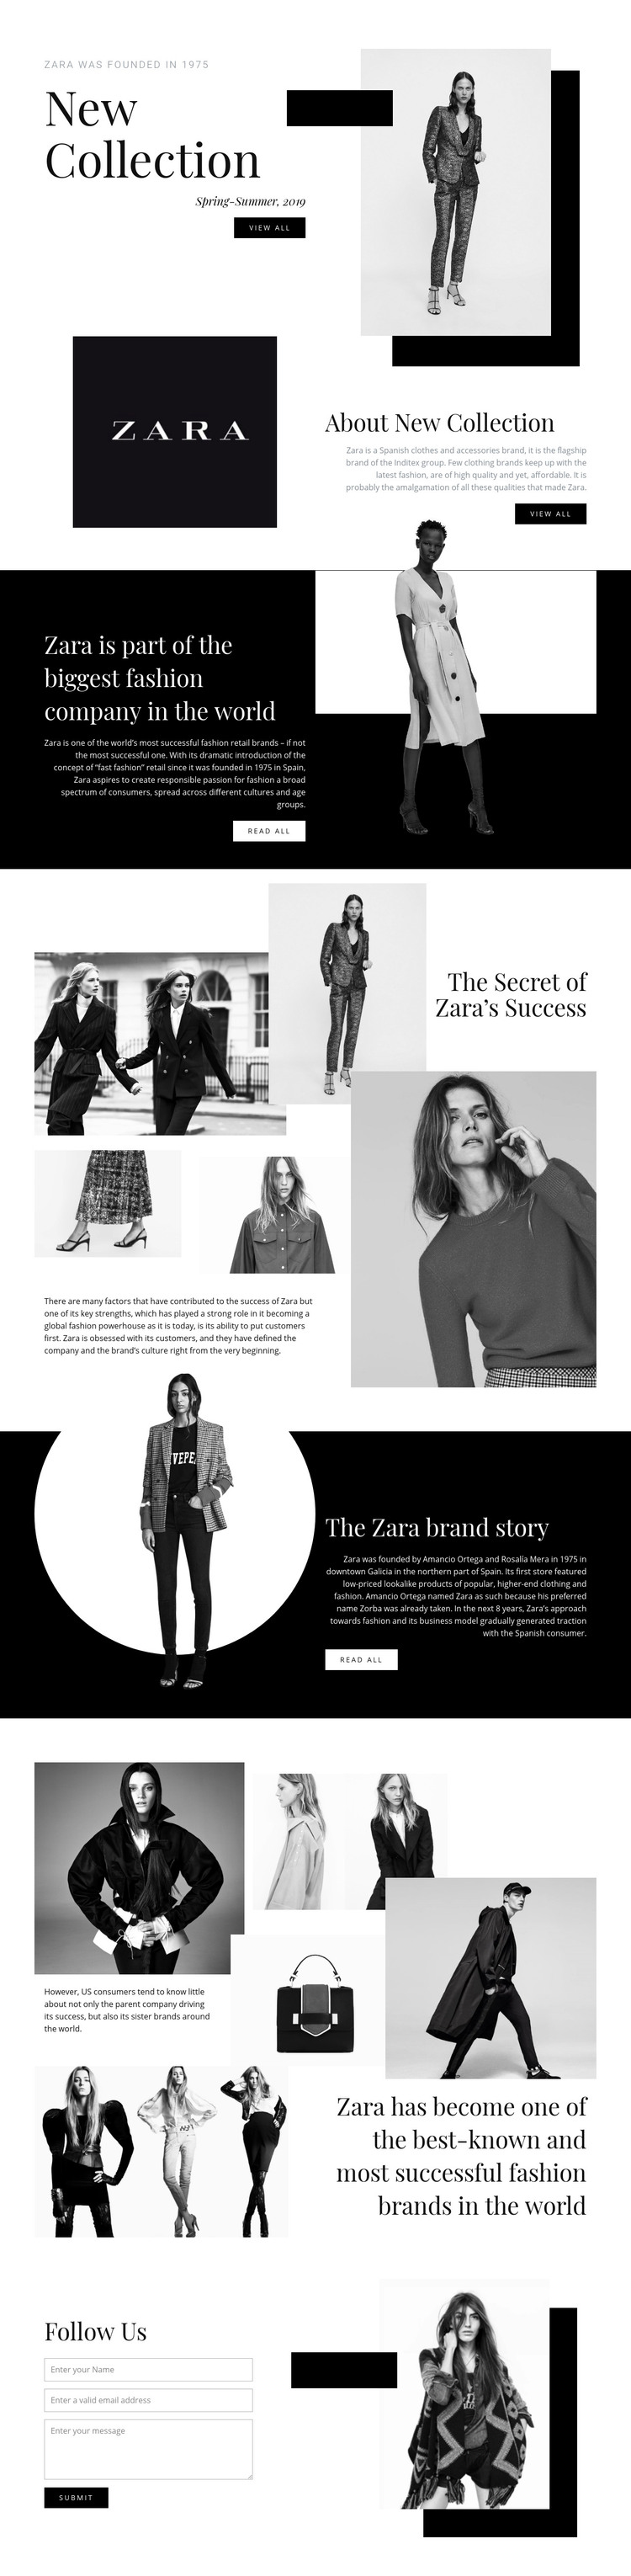 Zara collection Homepage Design